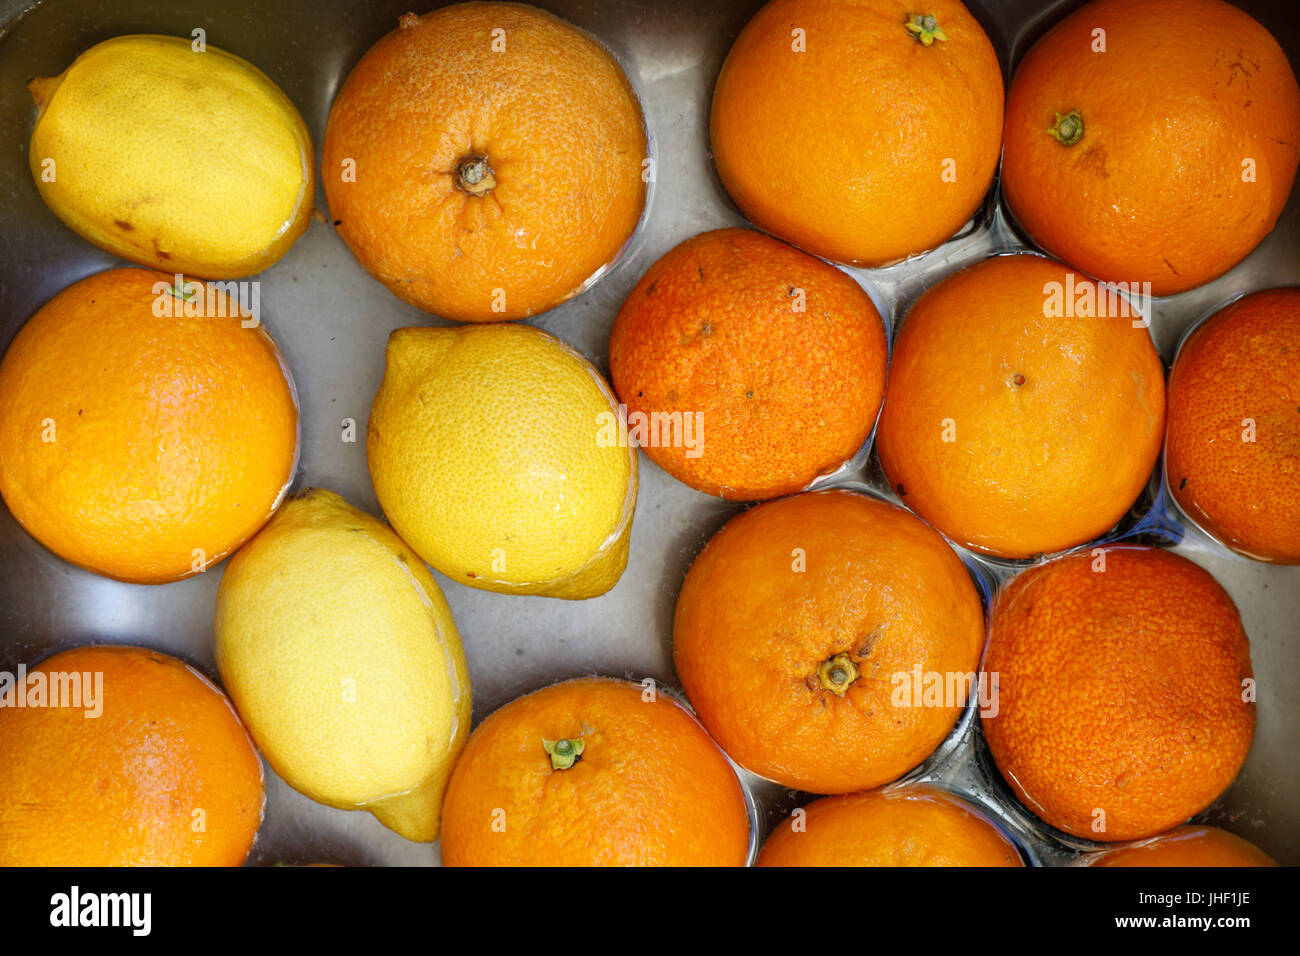 Oranges and lemons being washed in water in stainless steel sink - Stock Image